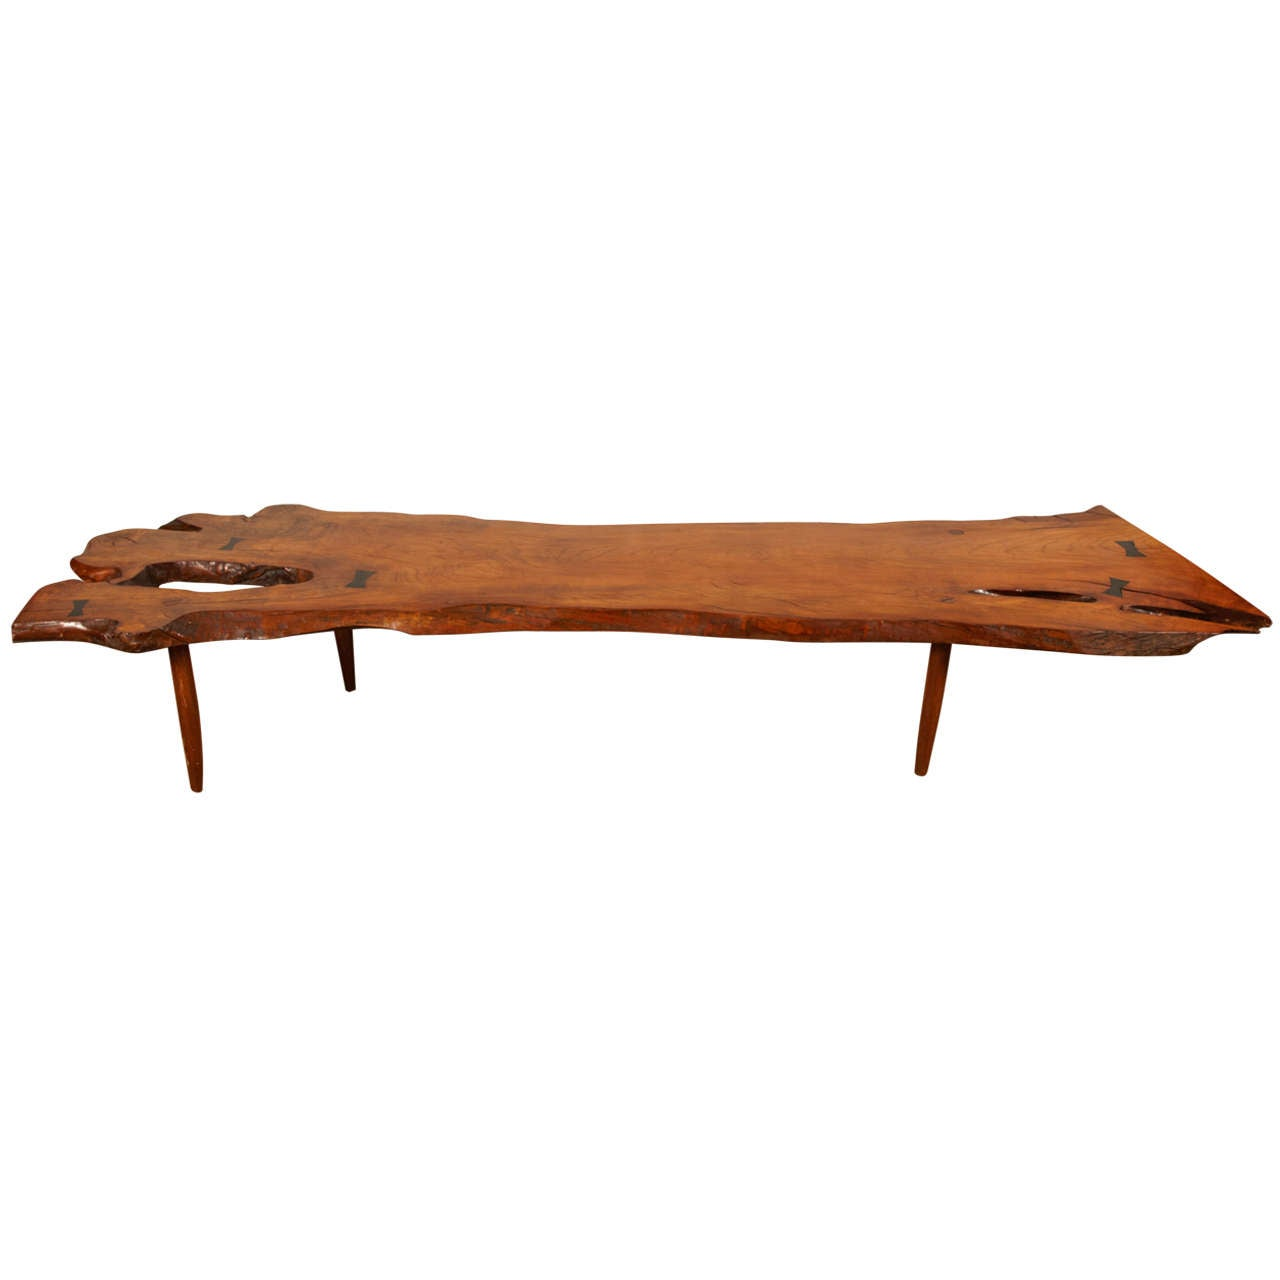 A Magnificent Coffee Table In The Taste Of George Nakashima